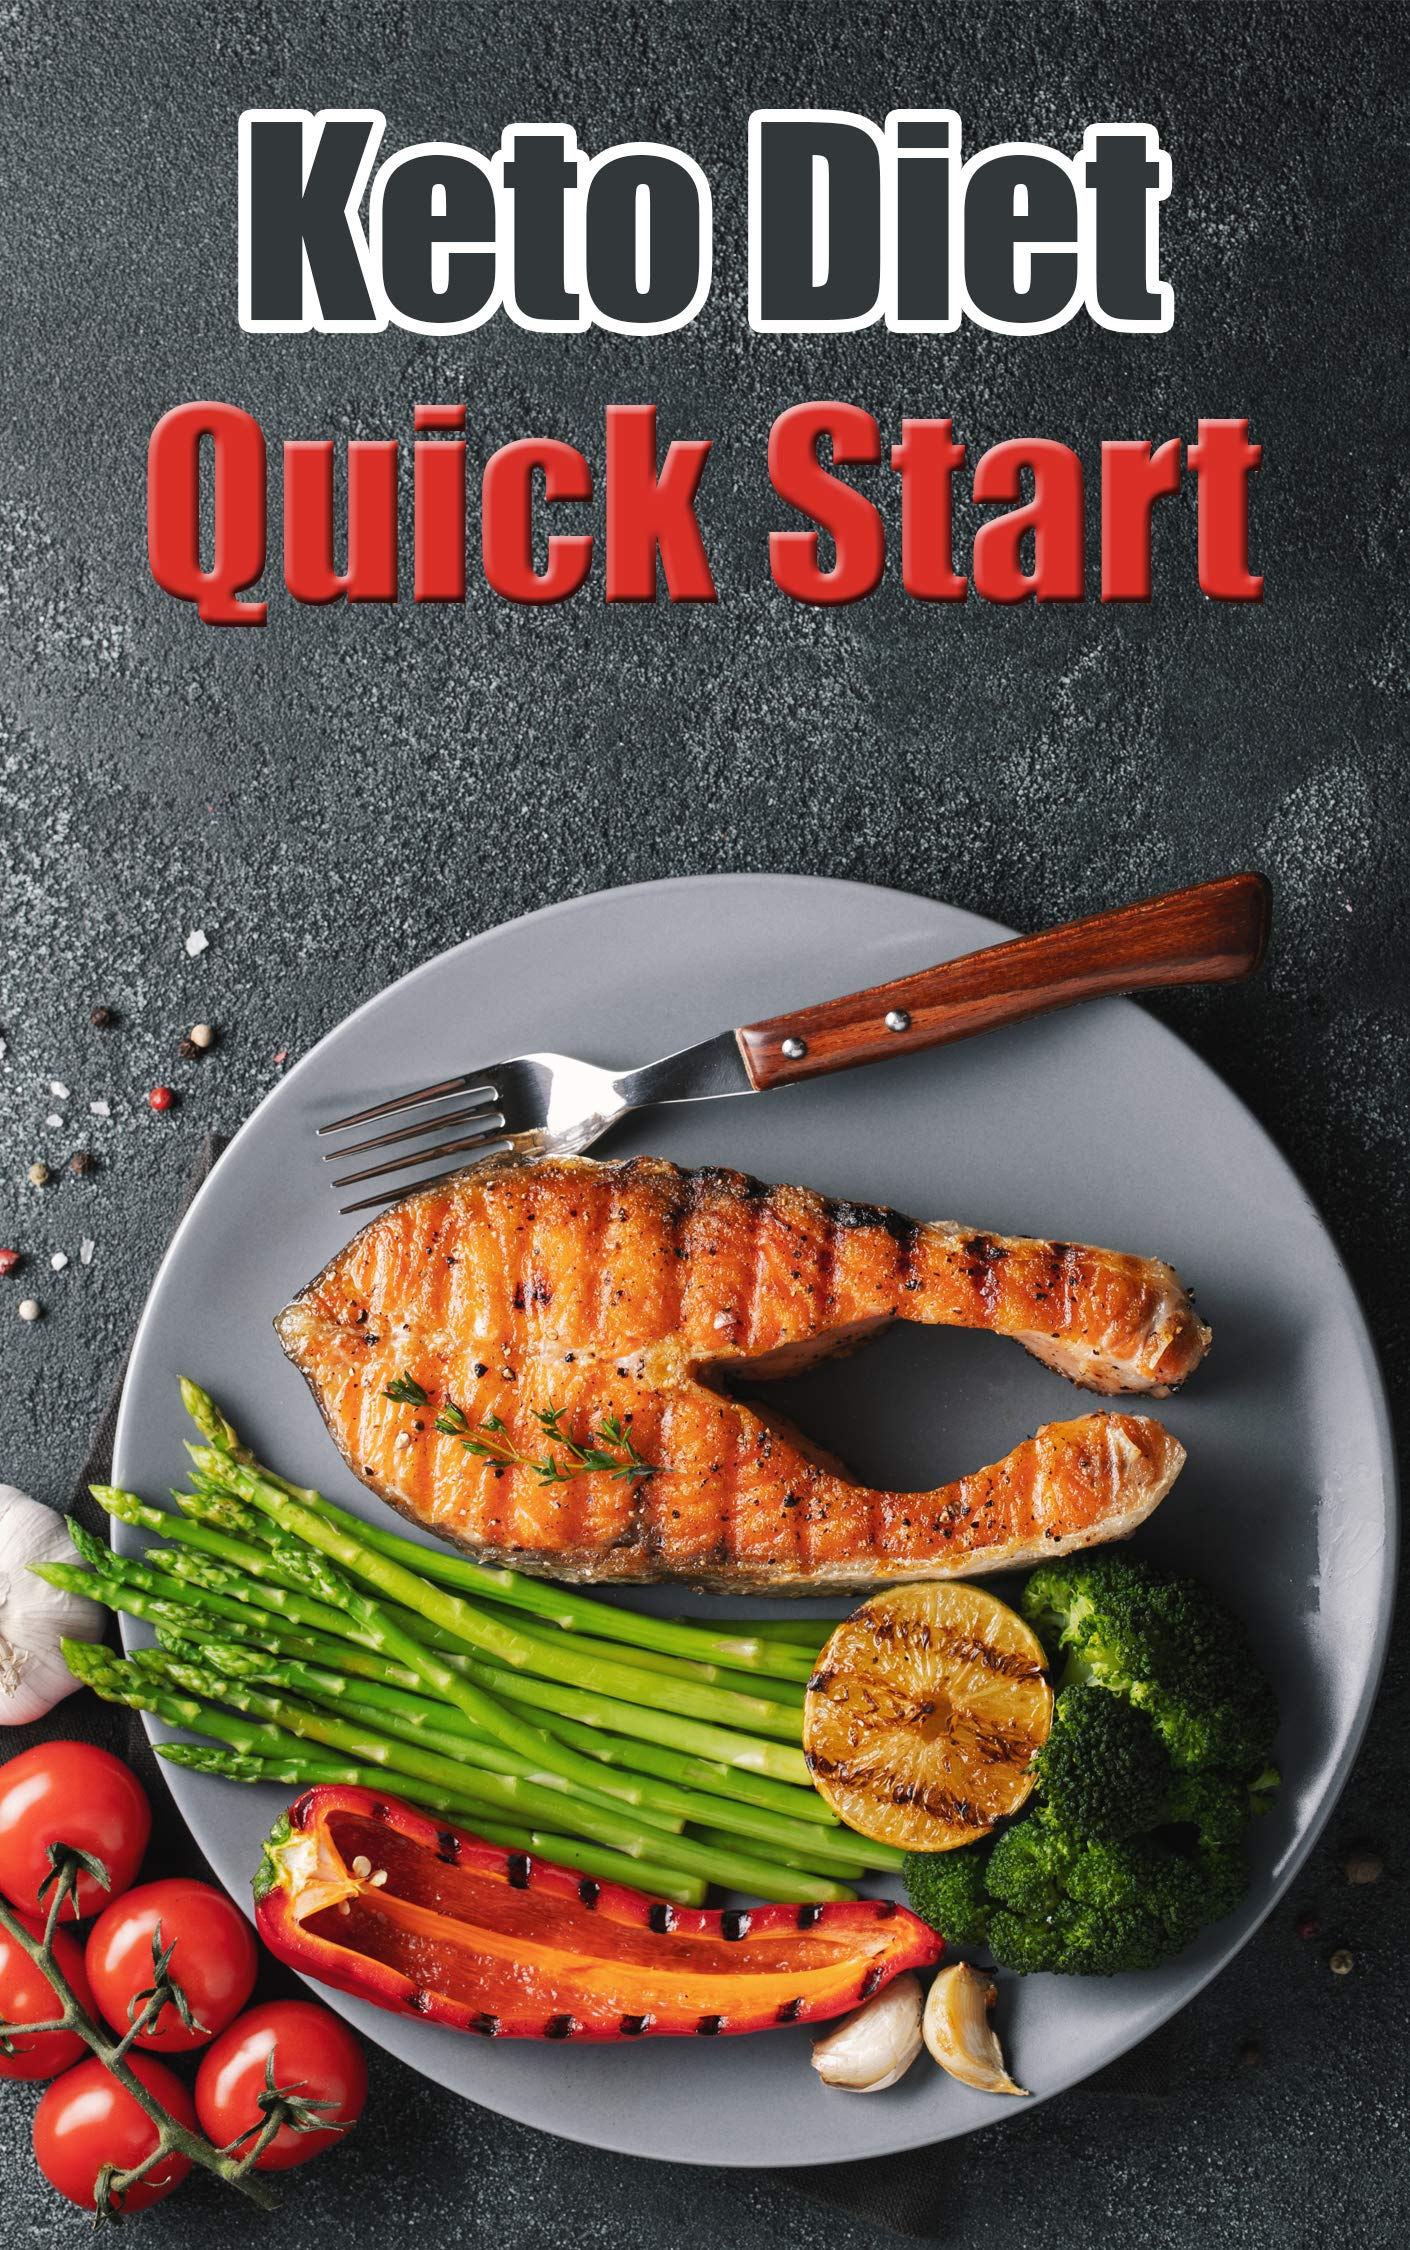 Keto Diet Easy Start: 52 Recipes Bible That's Why Keto Diet is Very Popular for Diet Weight Loss with Healthy Living (ketogenic Book 1) por Arika Williams